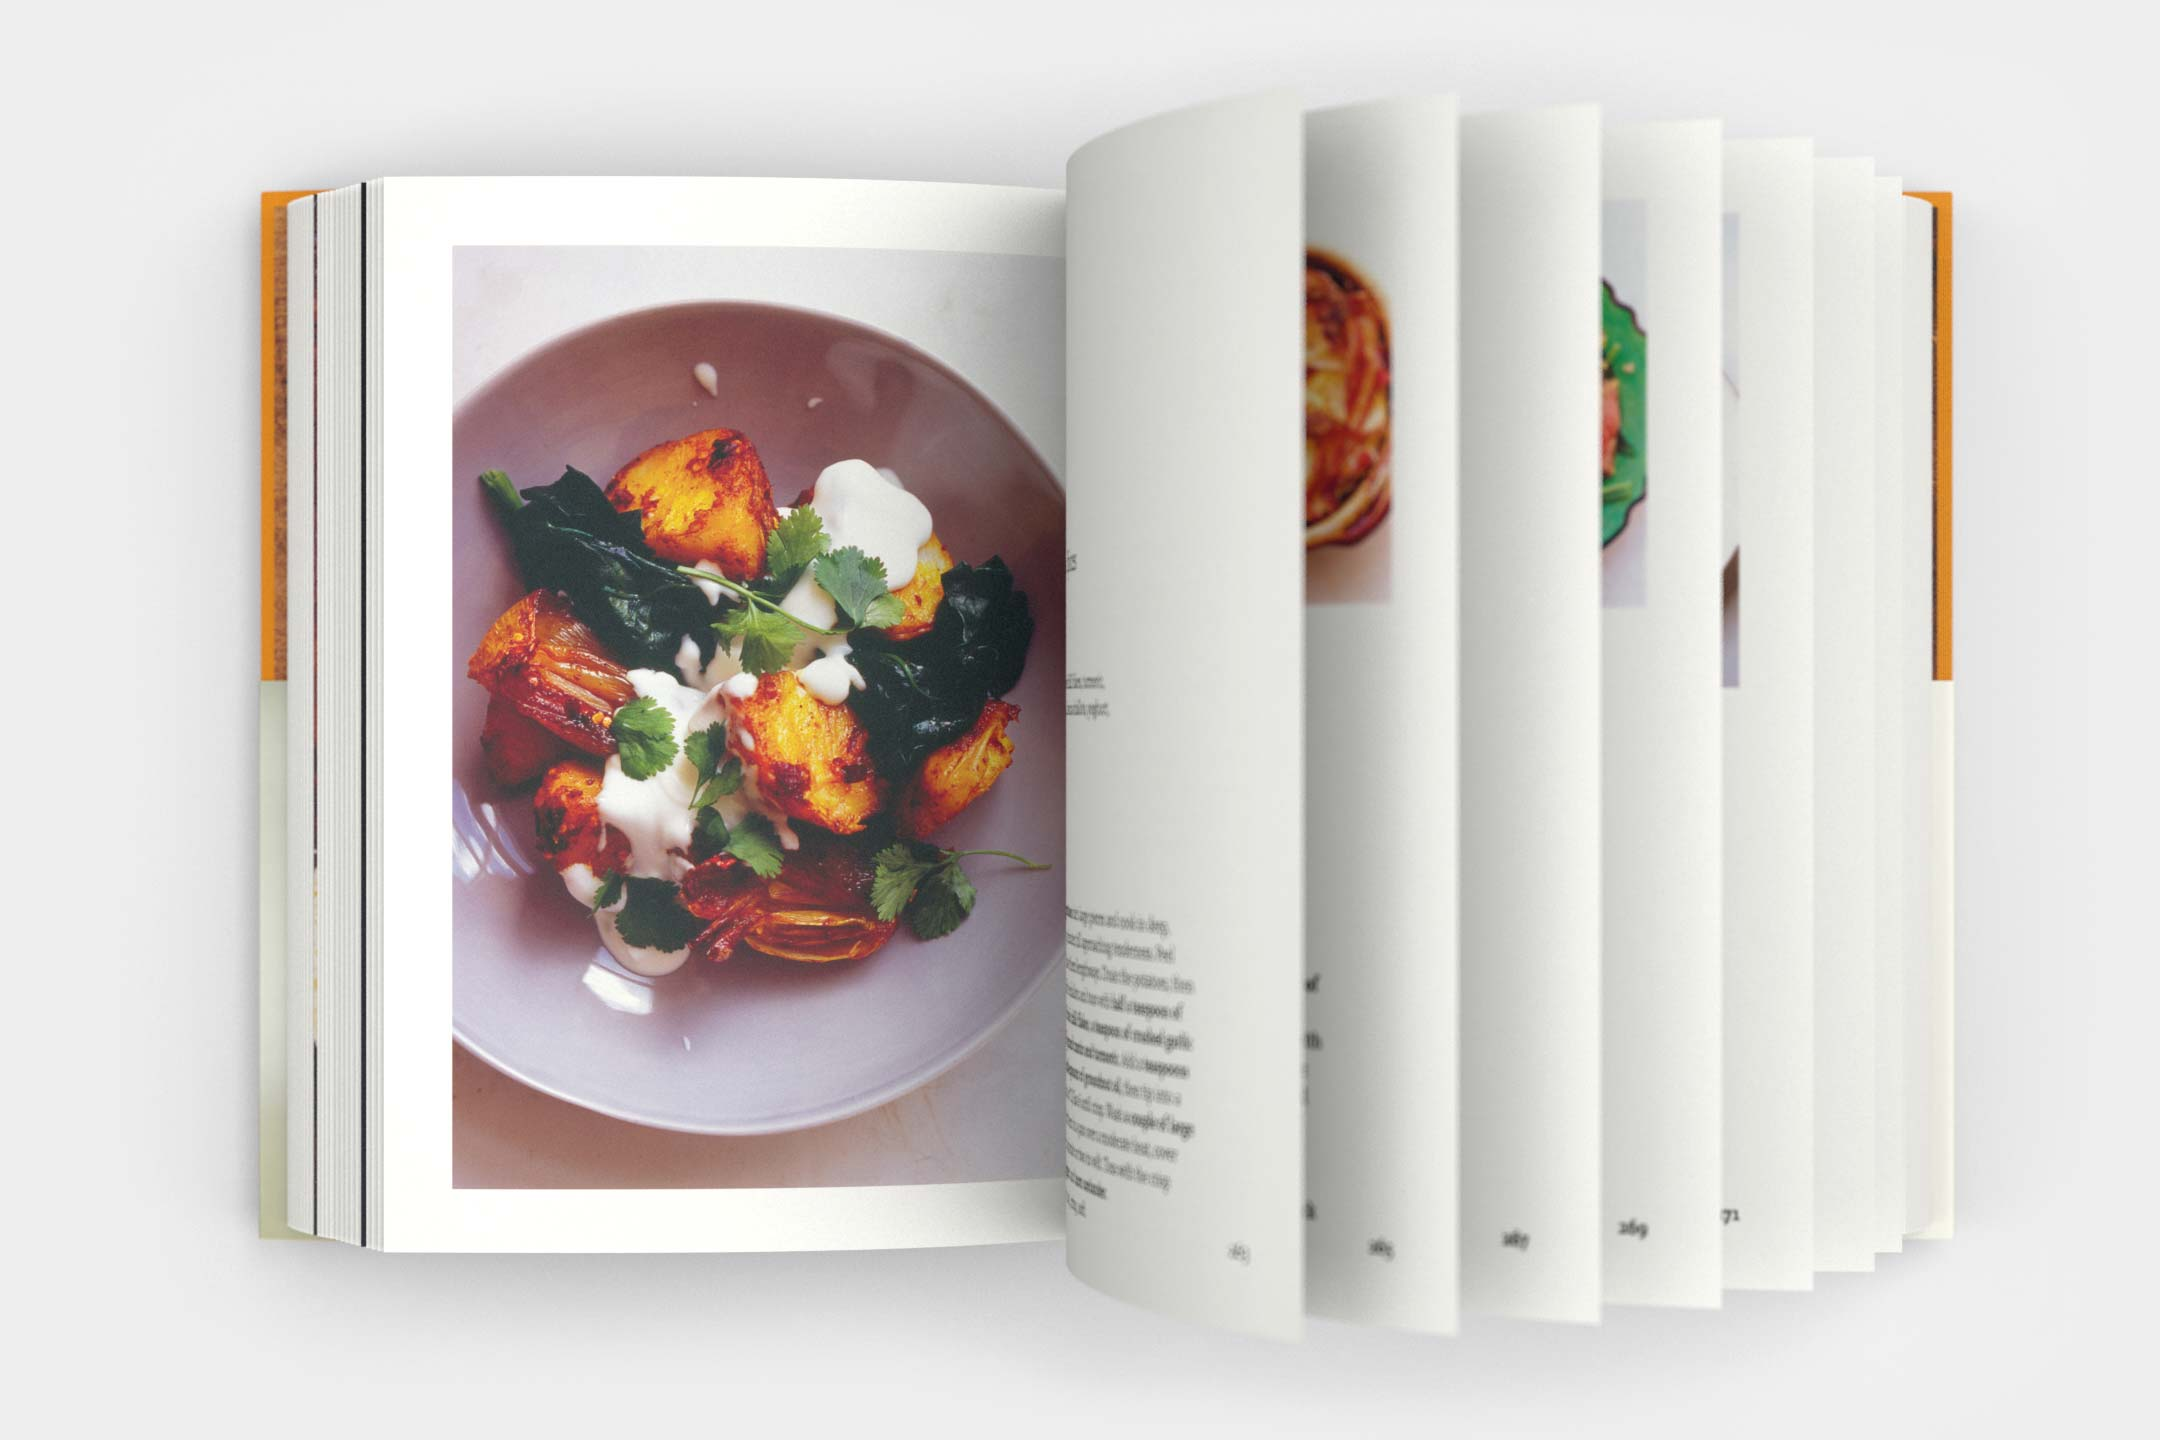 Nigel Slater, Eat. Animated product visualisation for One Darnley Road